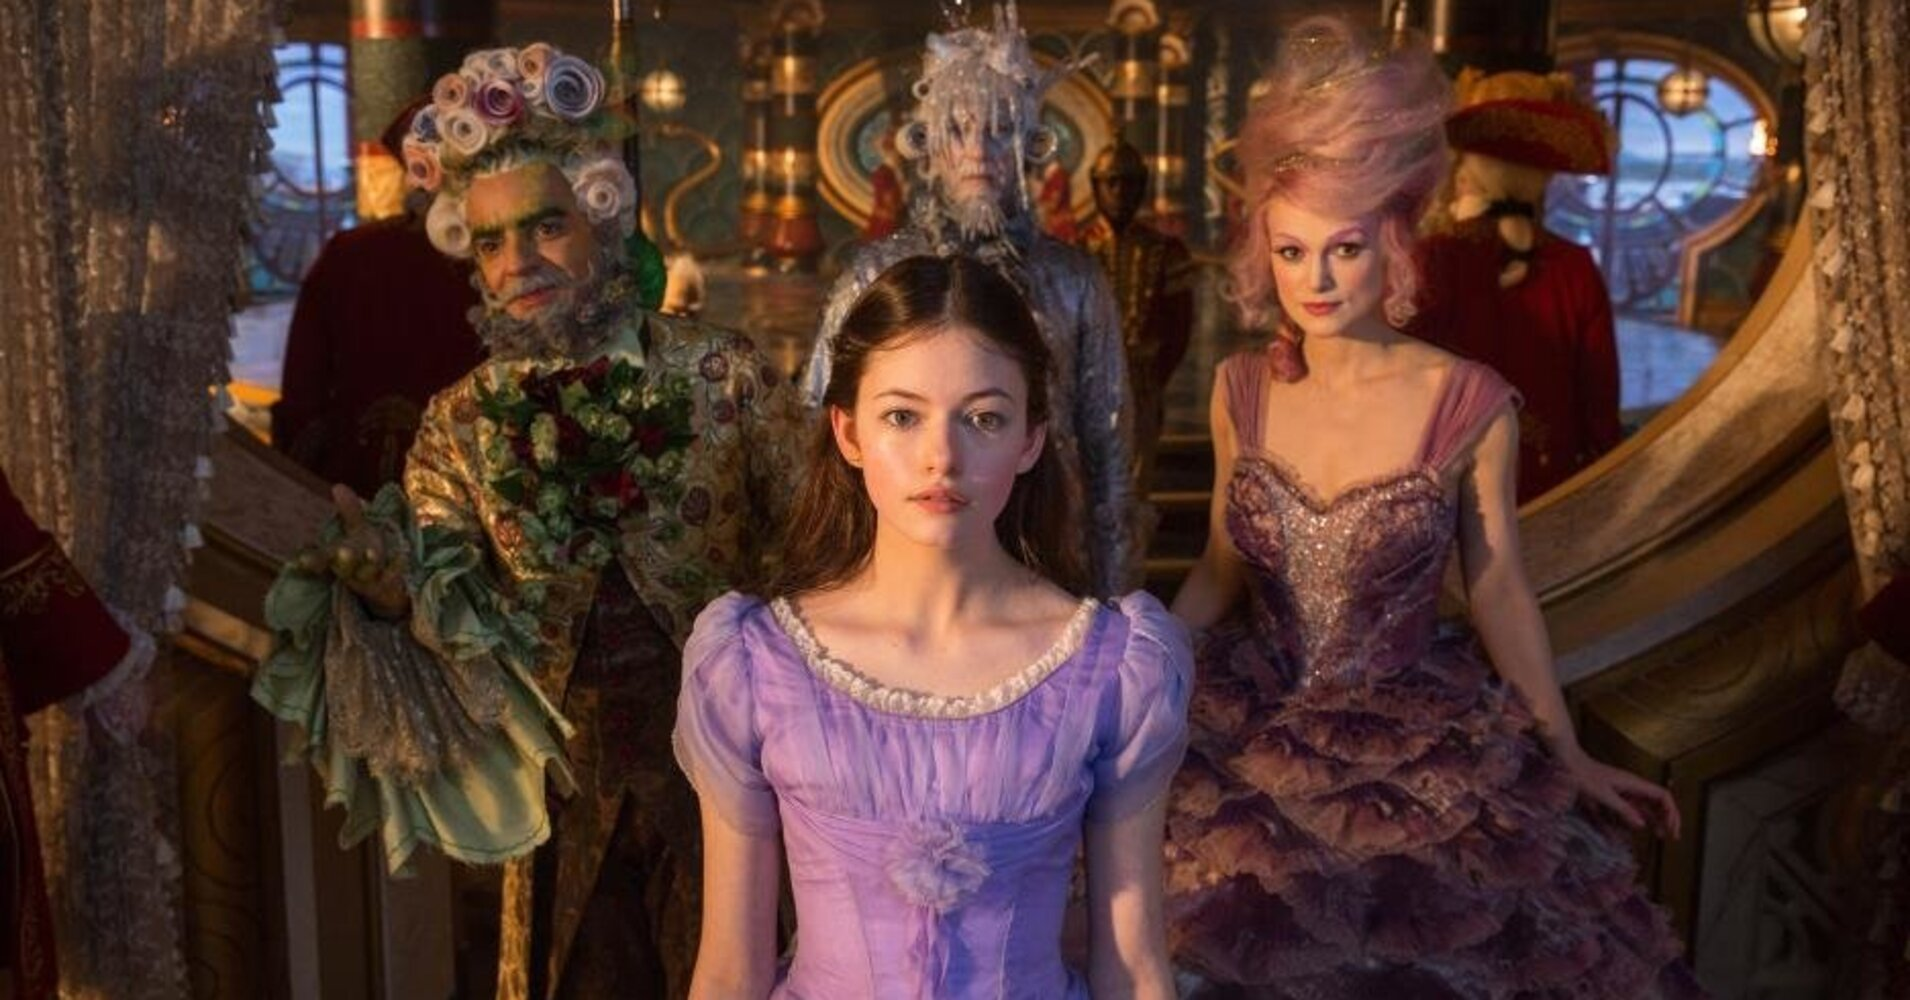 Is 'The Nutcracker And The Four Realms' Actually Good? (No.)